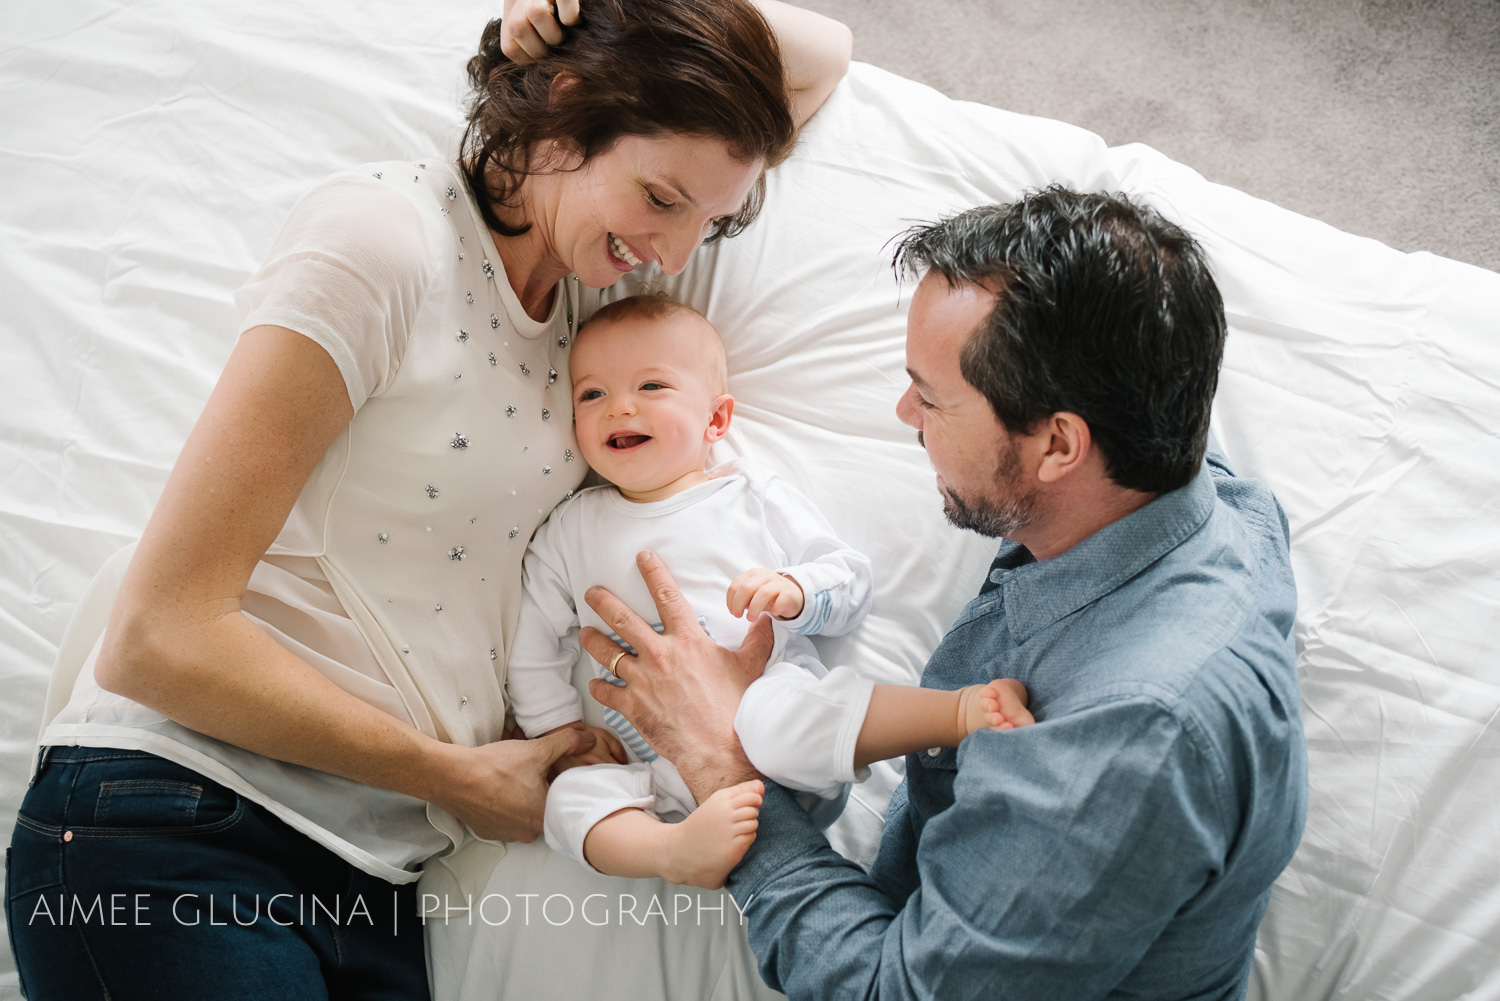 McBride Lifestyle Family Session by Aimee Glucina Photography-10.jpg